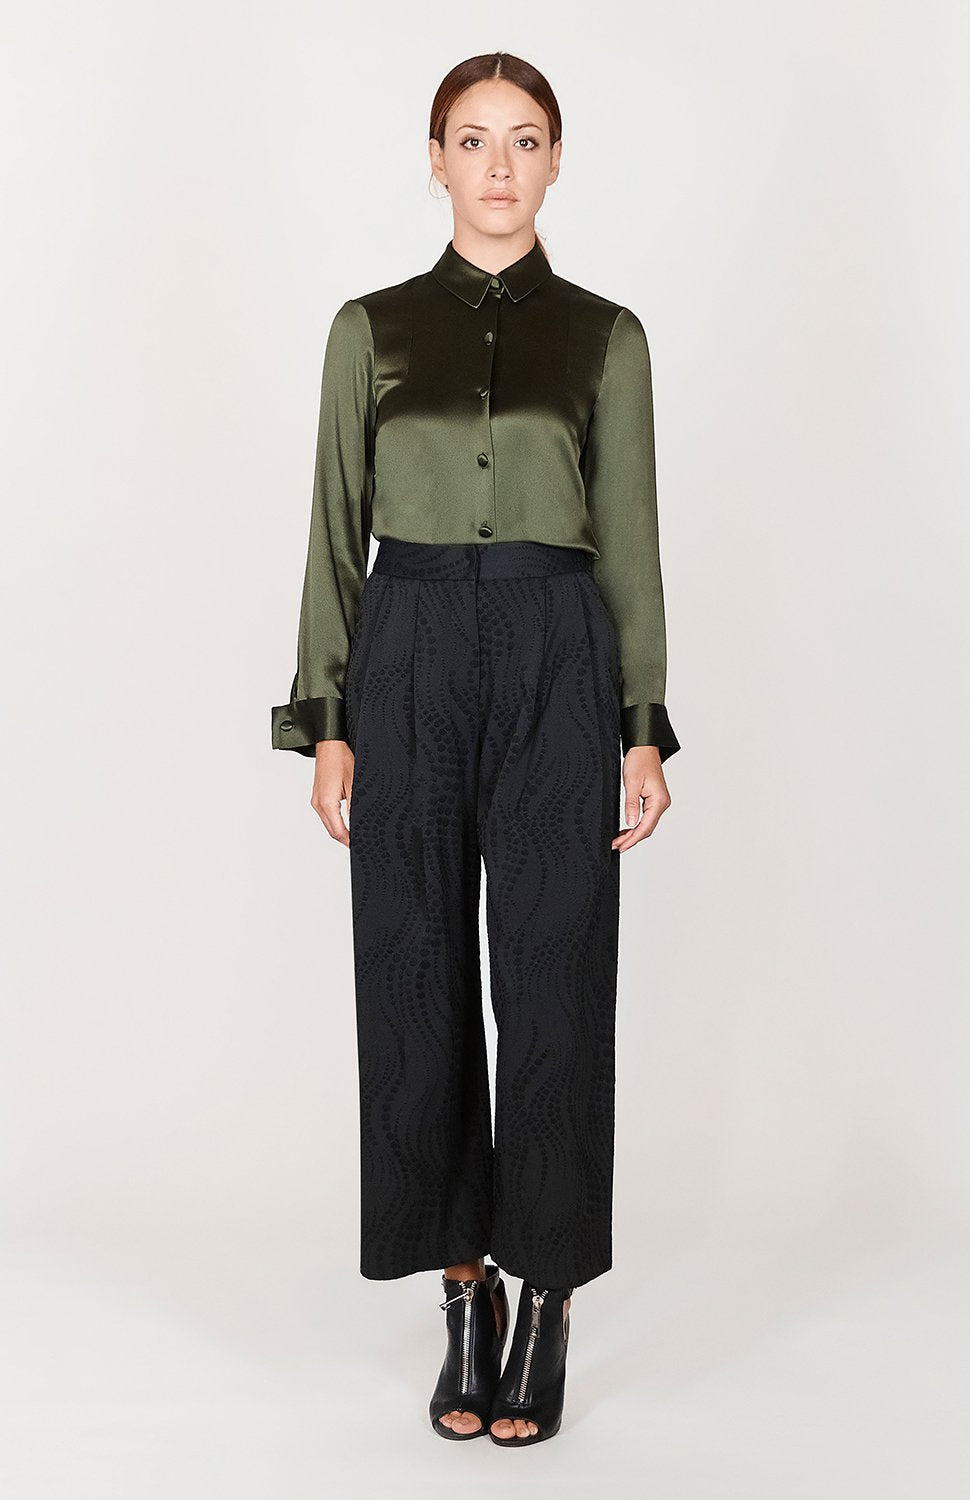 Mi Jong Lee Dotted Wave Wide Pleated Pants - Capsule 1